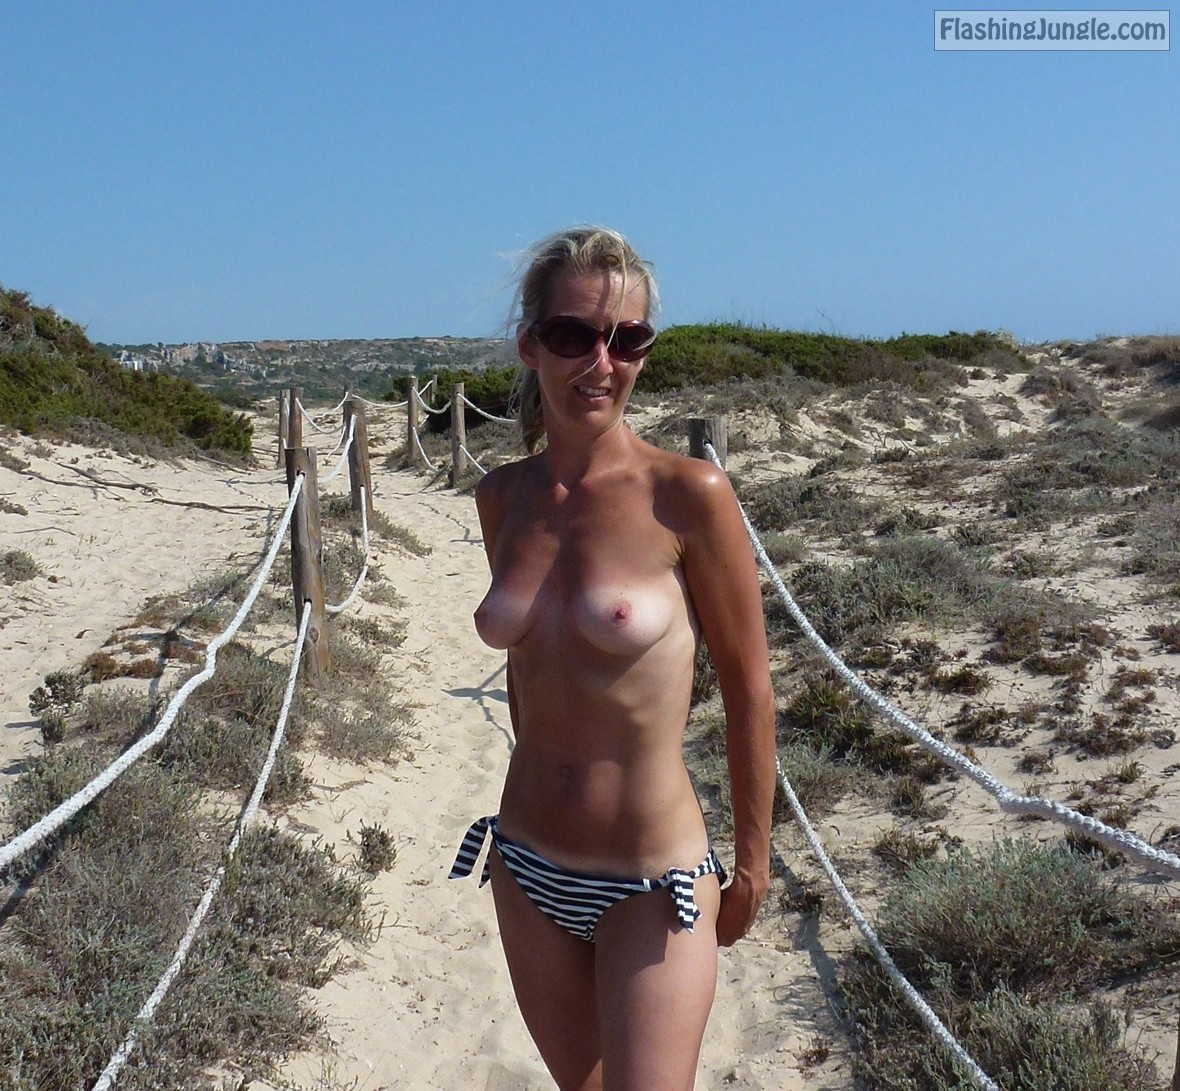 Our visitors wife on vacation milf pics howife boobs flash bitch